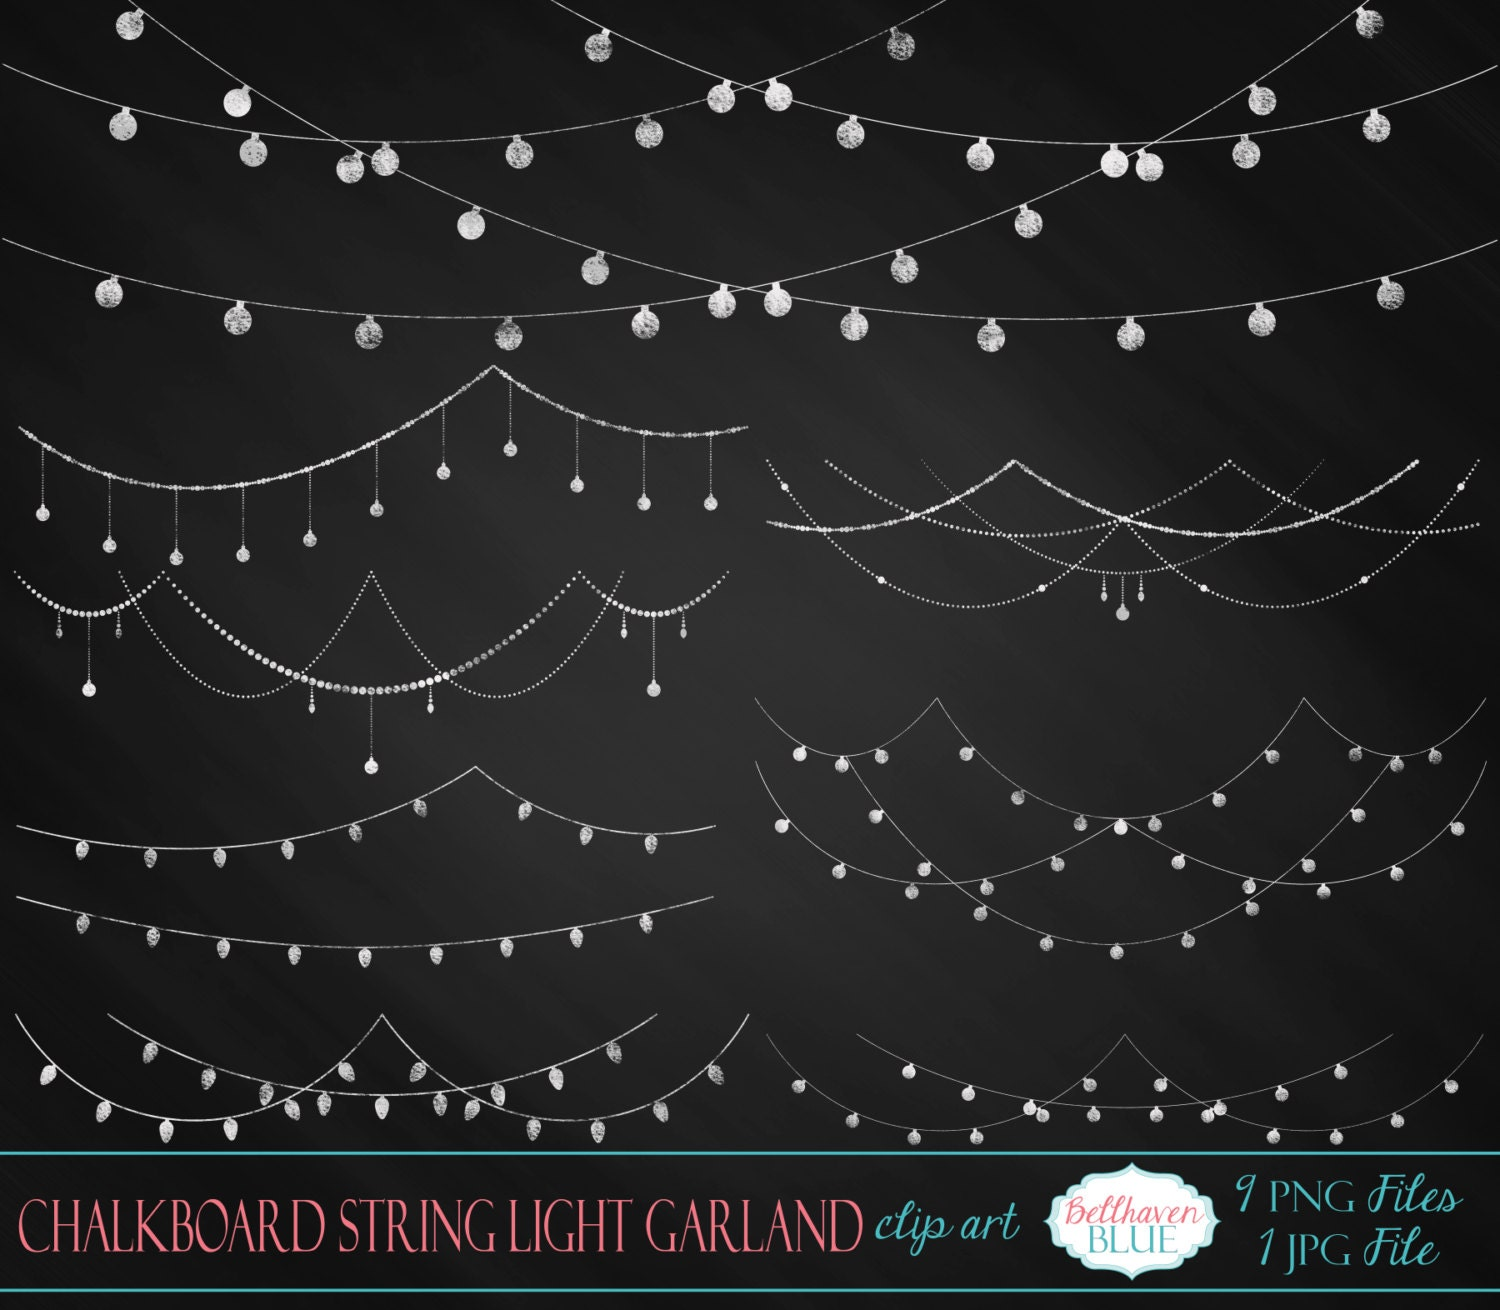 String Lights Clipart No Background Free : Chalkboard String Light Garland Clipart by BellhavenBlue on Etsy